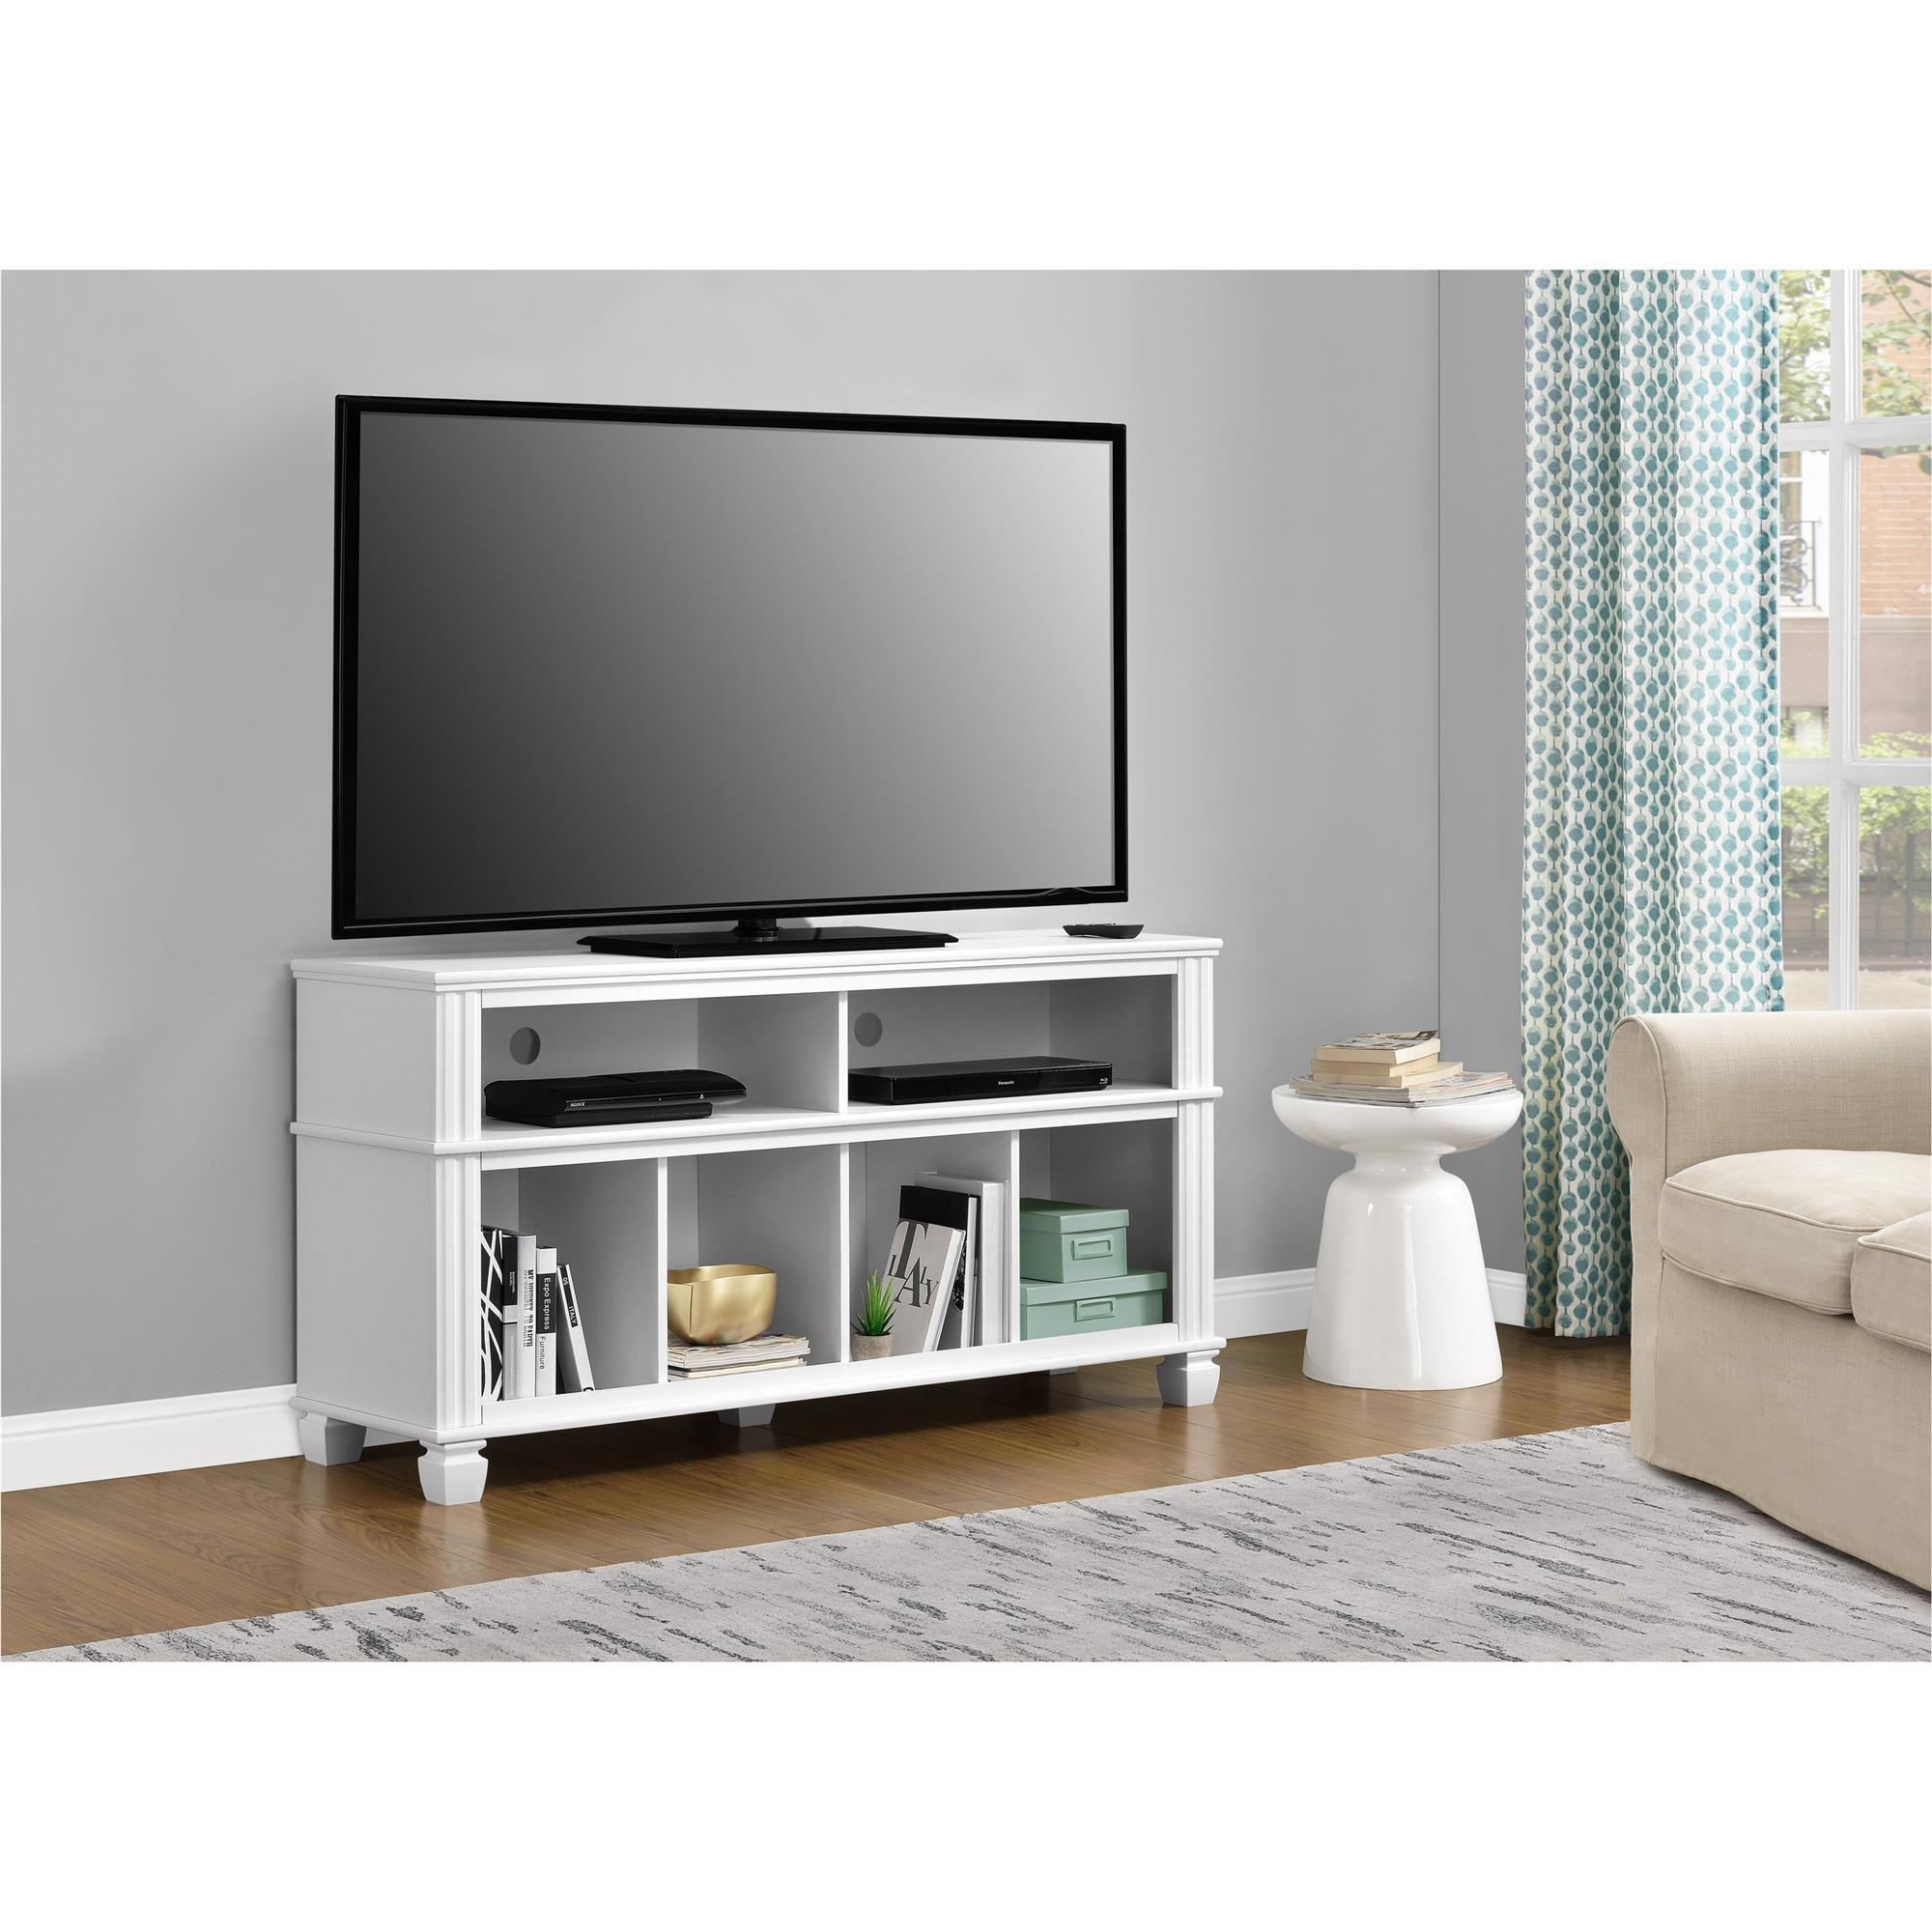 Enjoyable Ameriwood Home Woodcrest White 55 Inch Tv Stand Home Interior And Landscaping Mentranervesignezvosmurscom